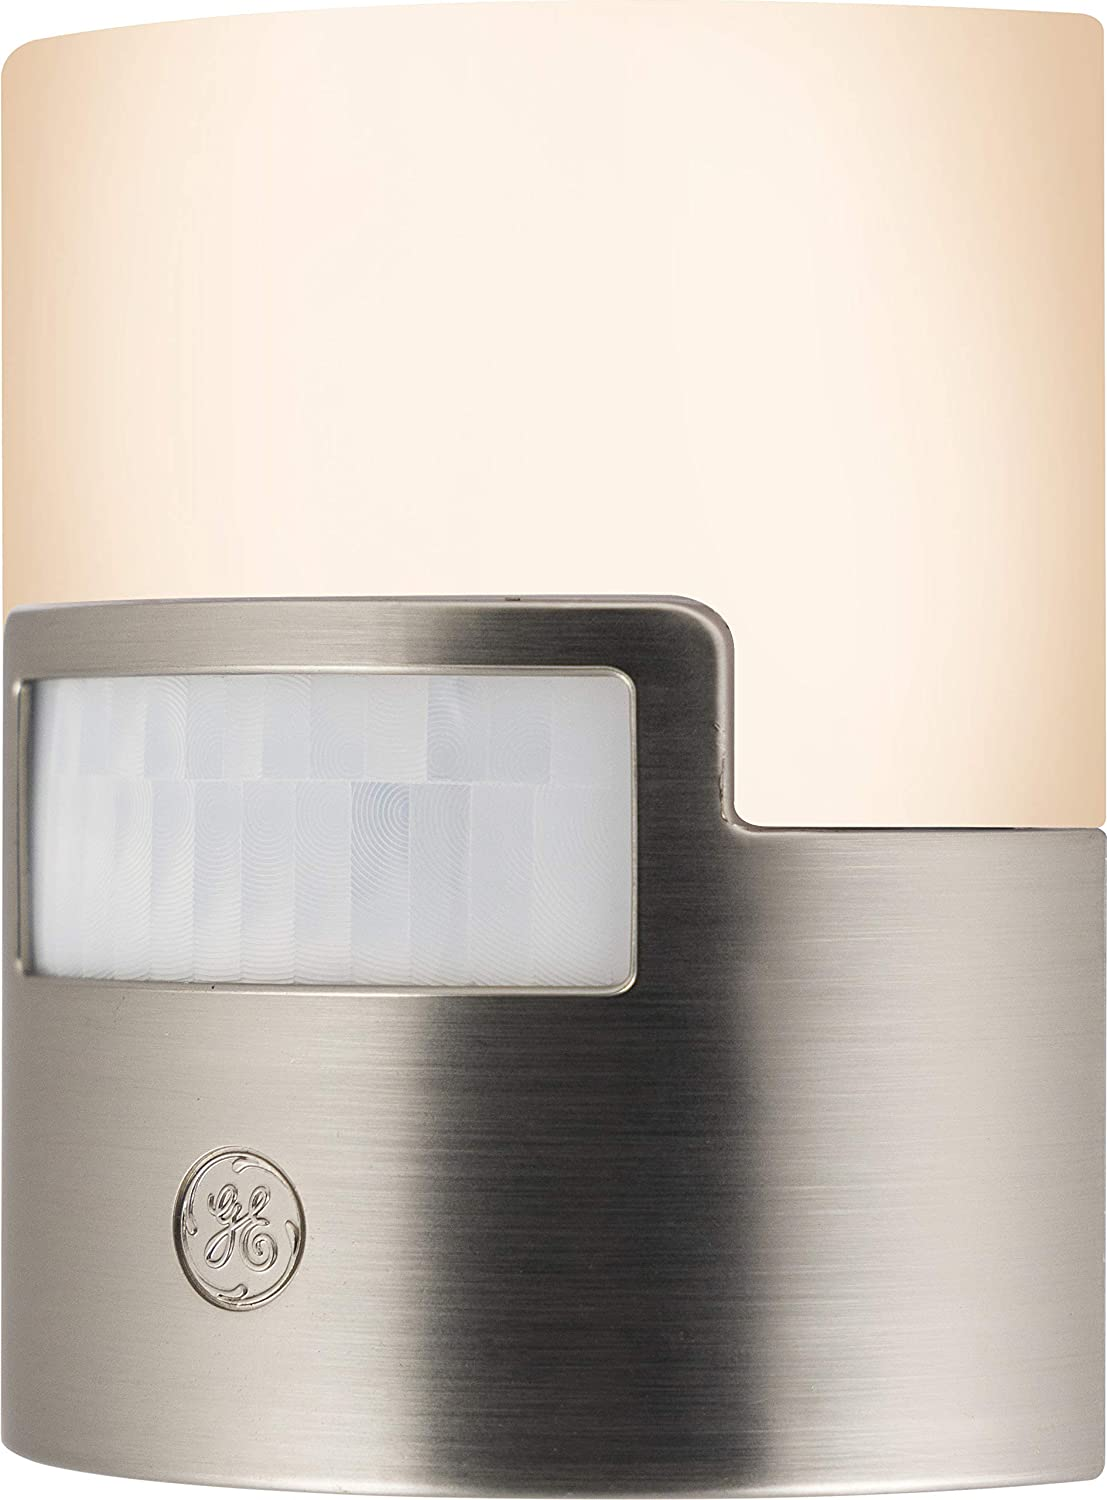 GE Enbrighten LED Night Light Motion Sensor, Plug, Soft White, UL Listed, Ideal for Bedroom, Nursery, Bathroom, Kitchen, Hallway, 30815, 1 Piece, Brushed Nickel | 40 Lumens